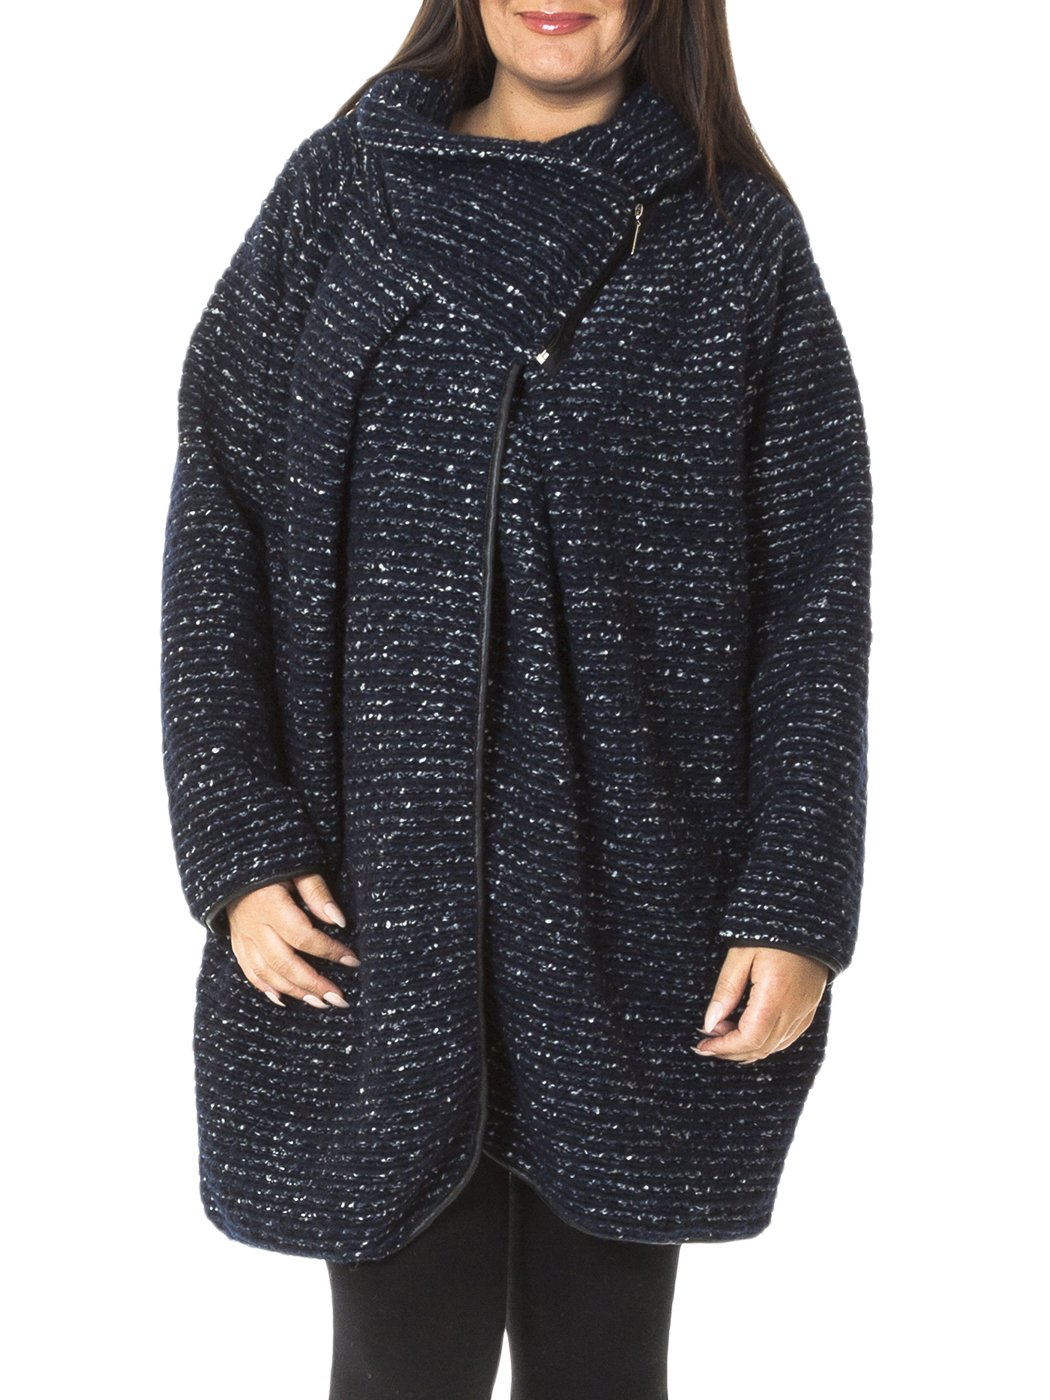 Knitted coats for women